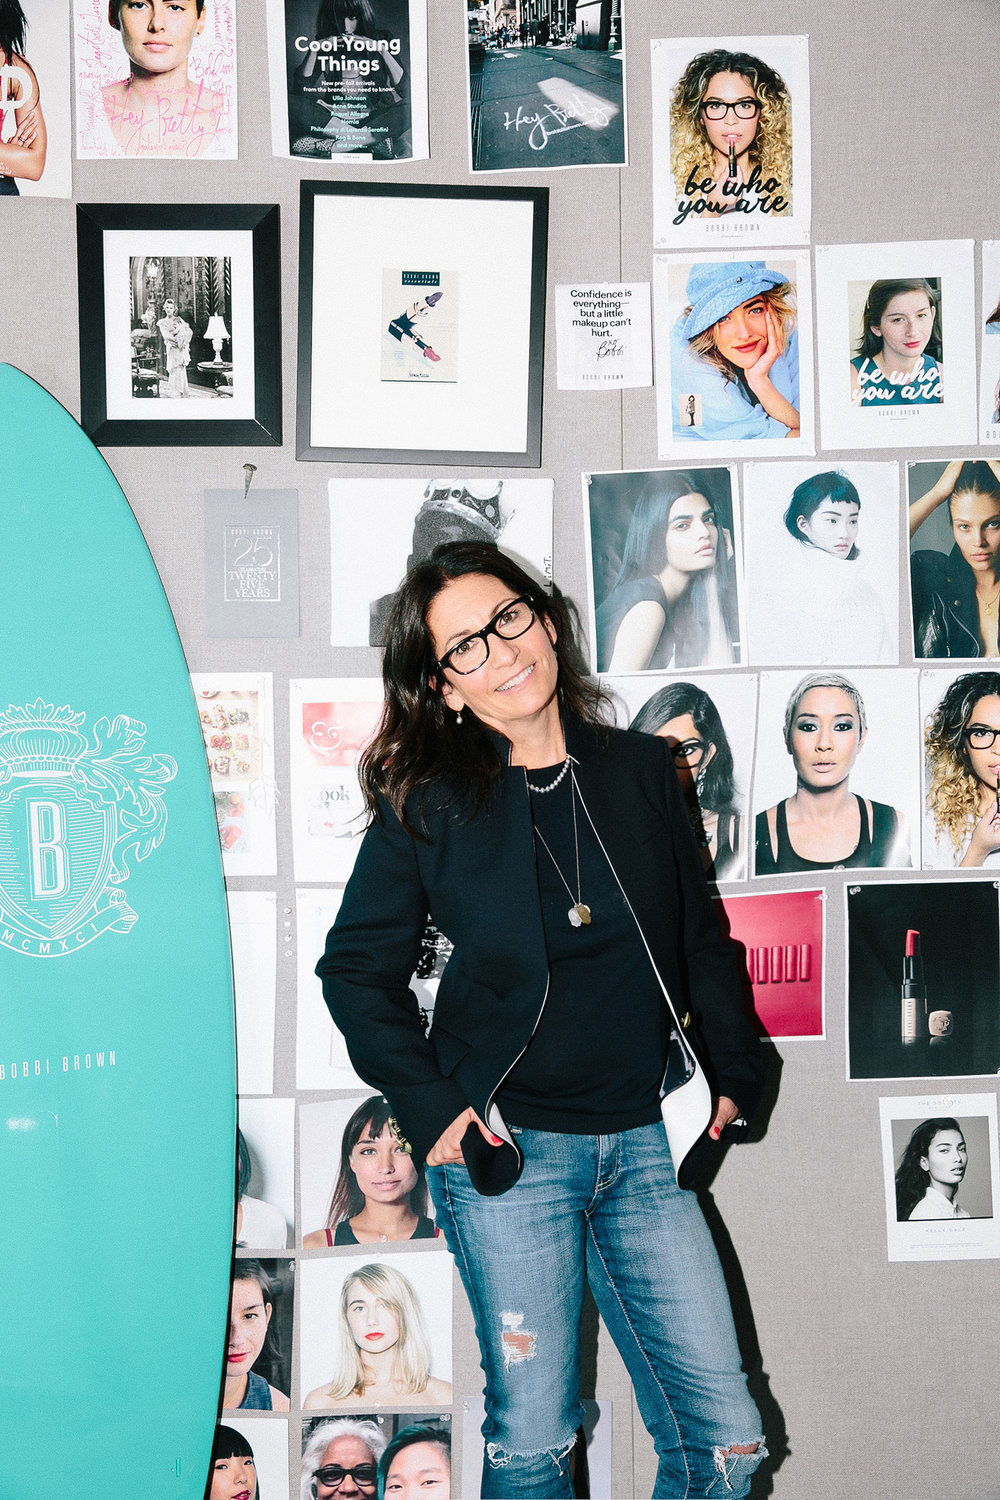 Bobbi Brown in her New York City office.